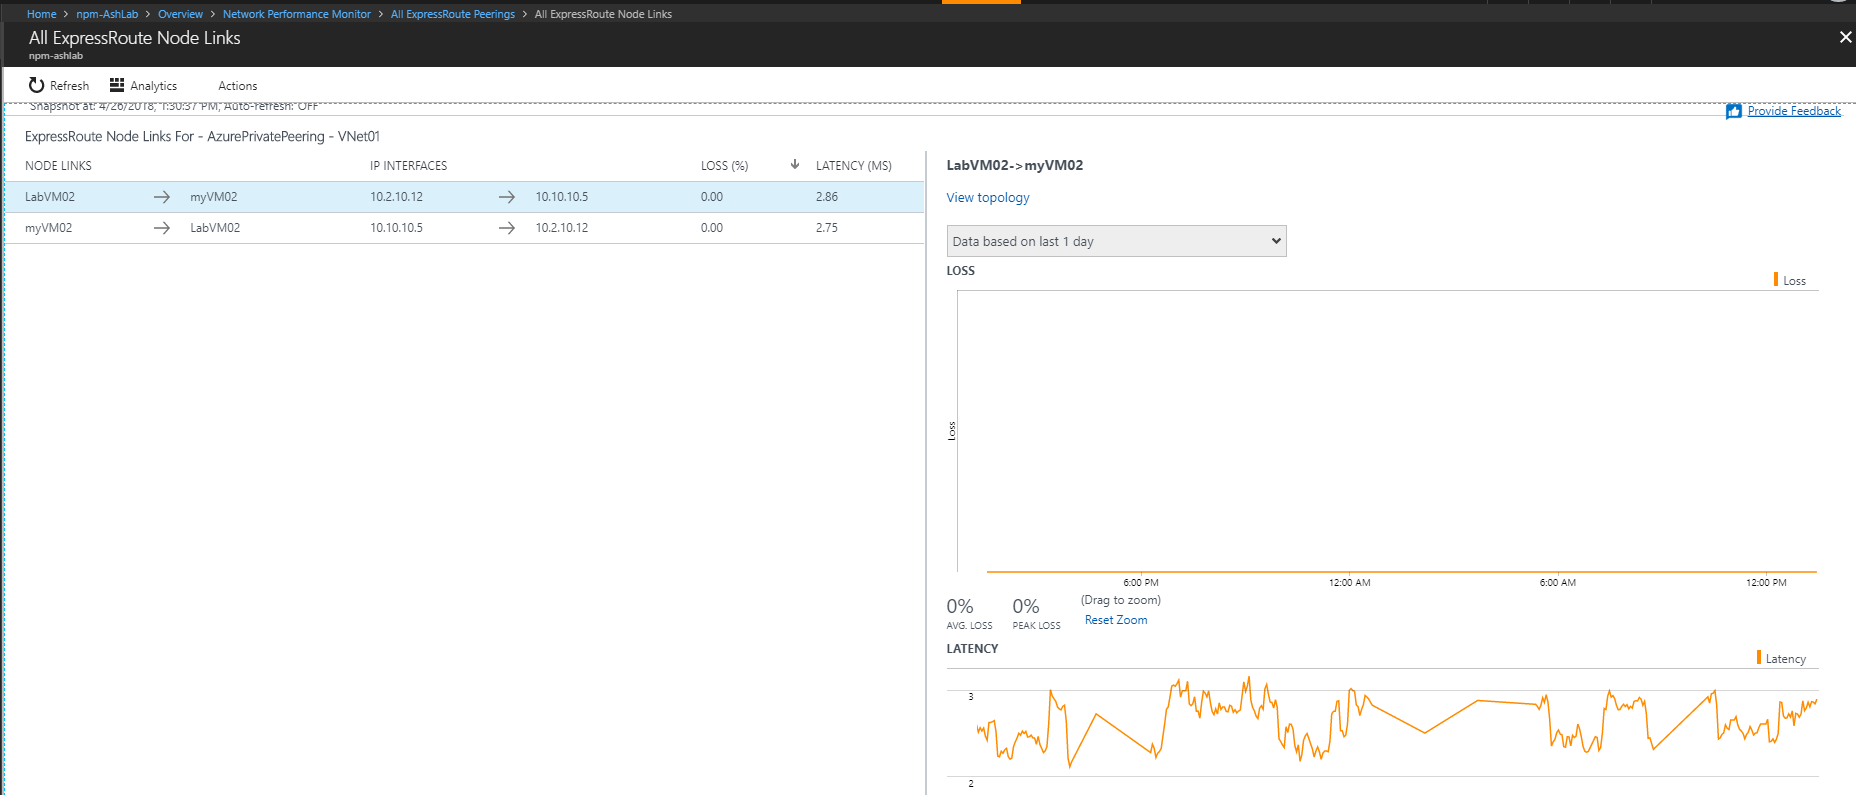 Configure Network Performance Monitor for ExpressRoute